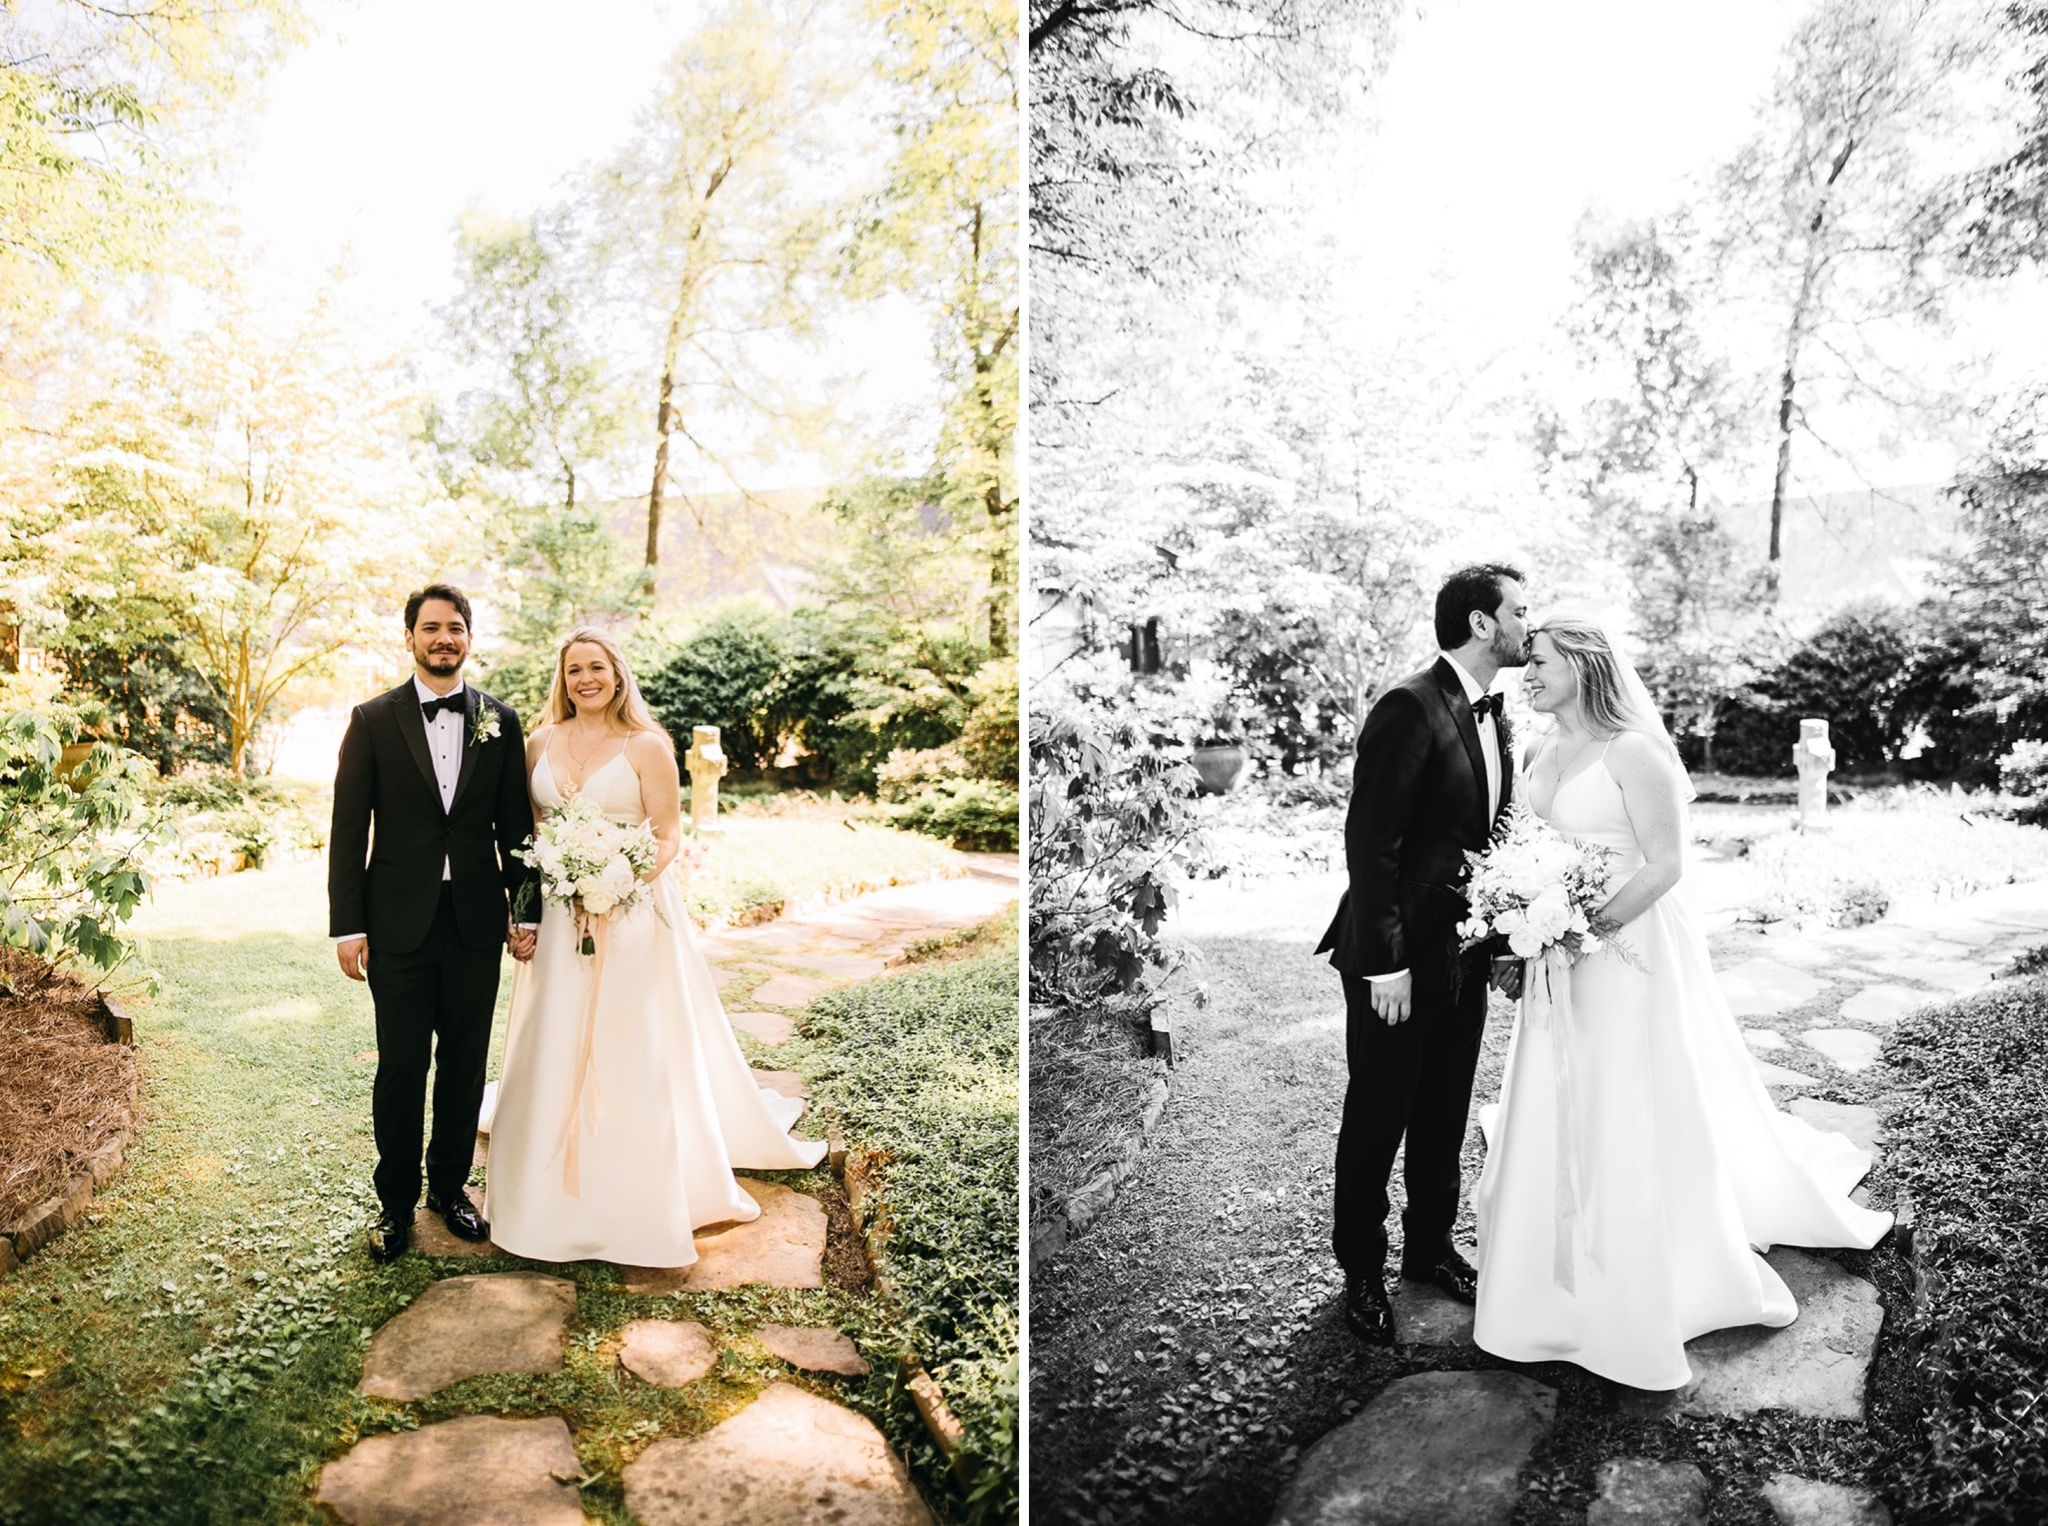 bride and groom hold hands and look at each other while walking on rocky path through lush garden